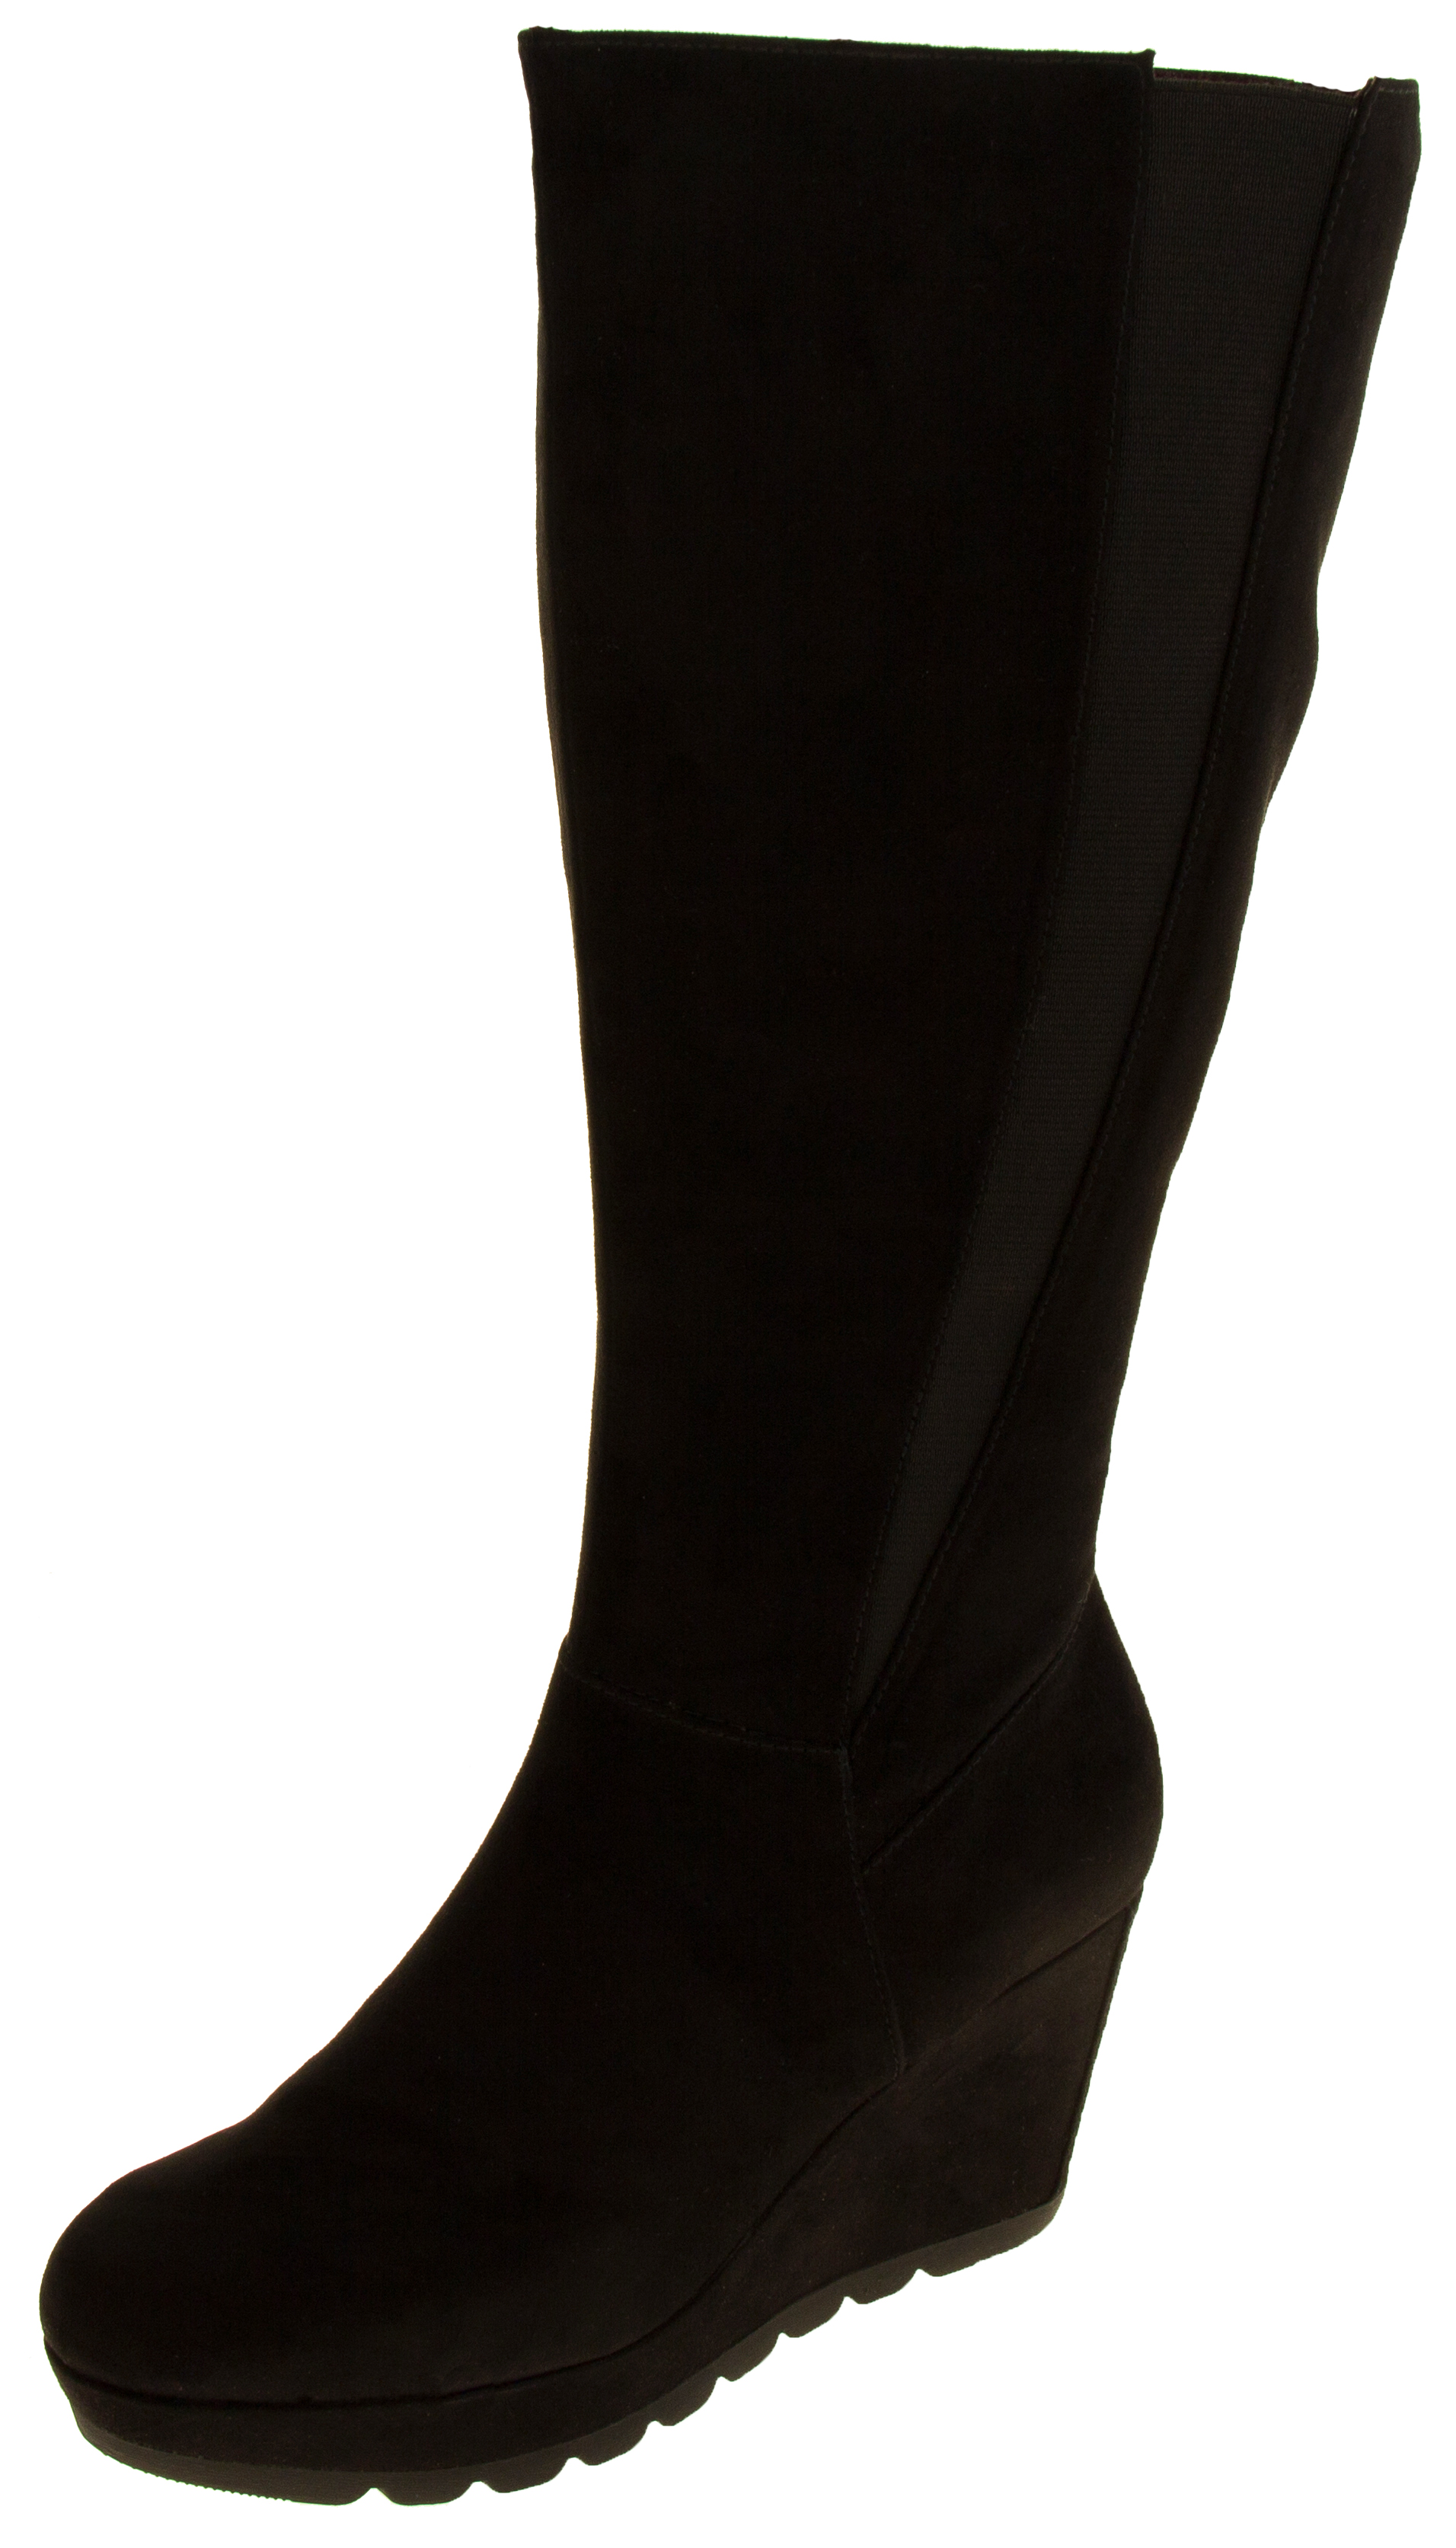 865cf09c3c9d Ladies S.Oliver 25527-27 Faux Suede Wedge Heel Knee High Boots ...